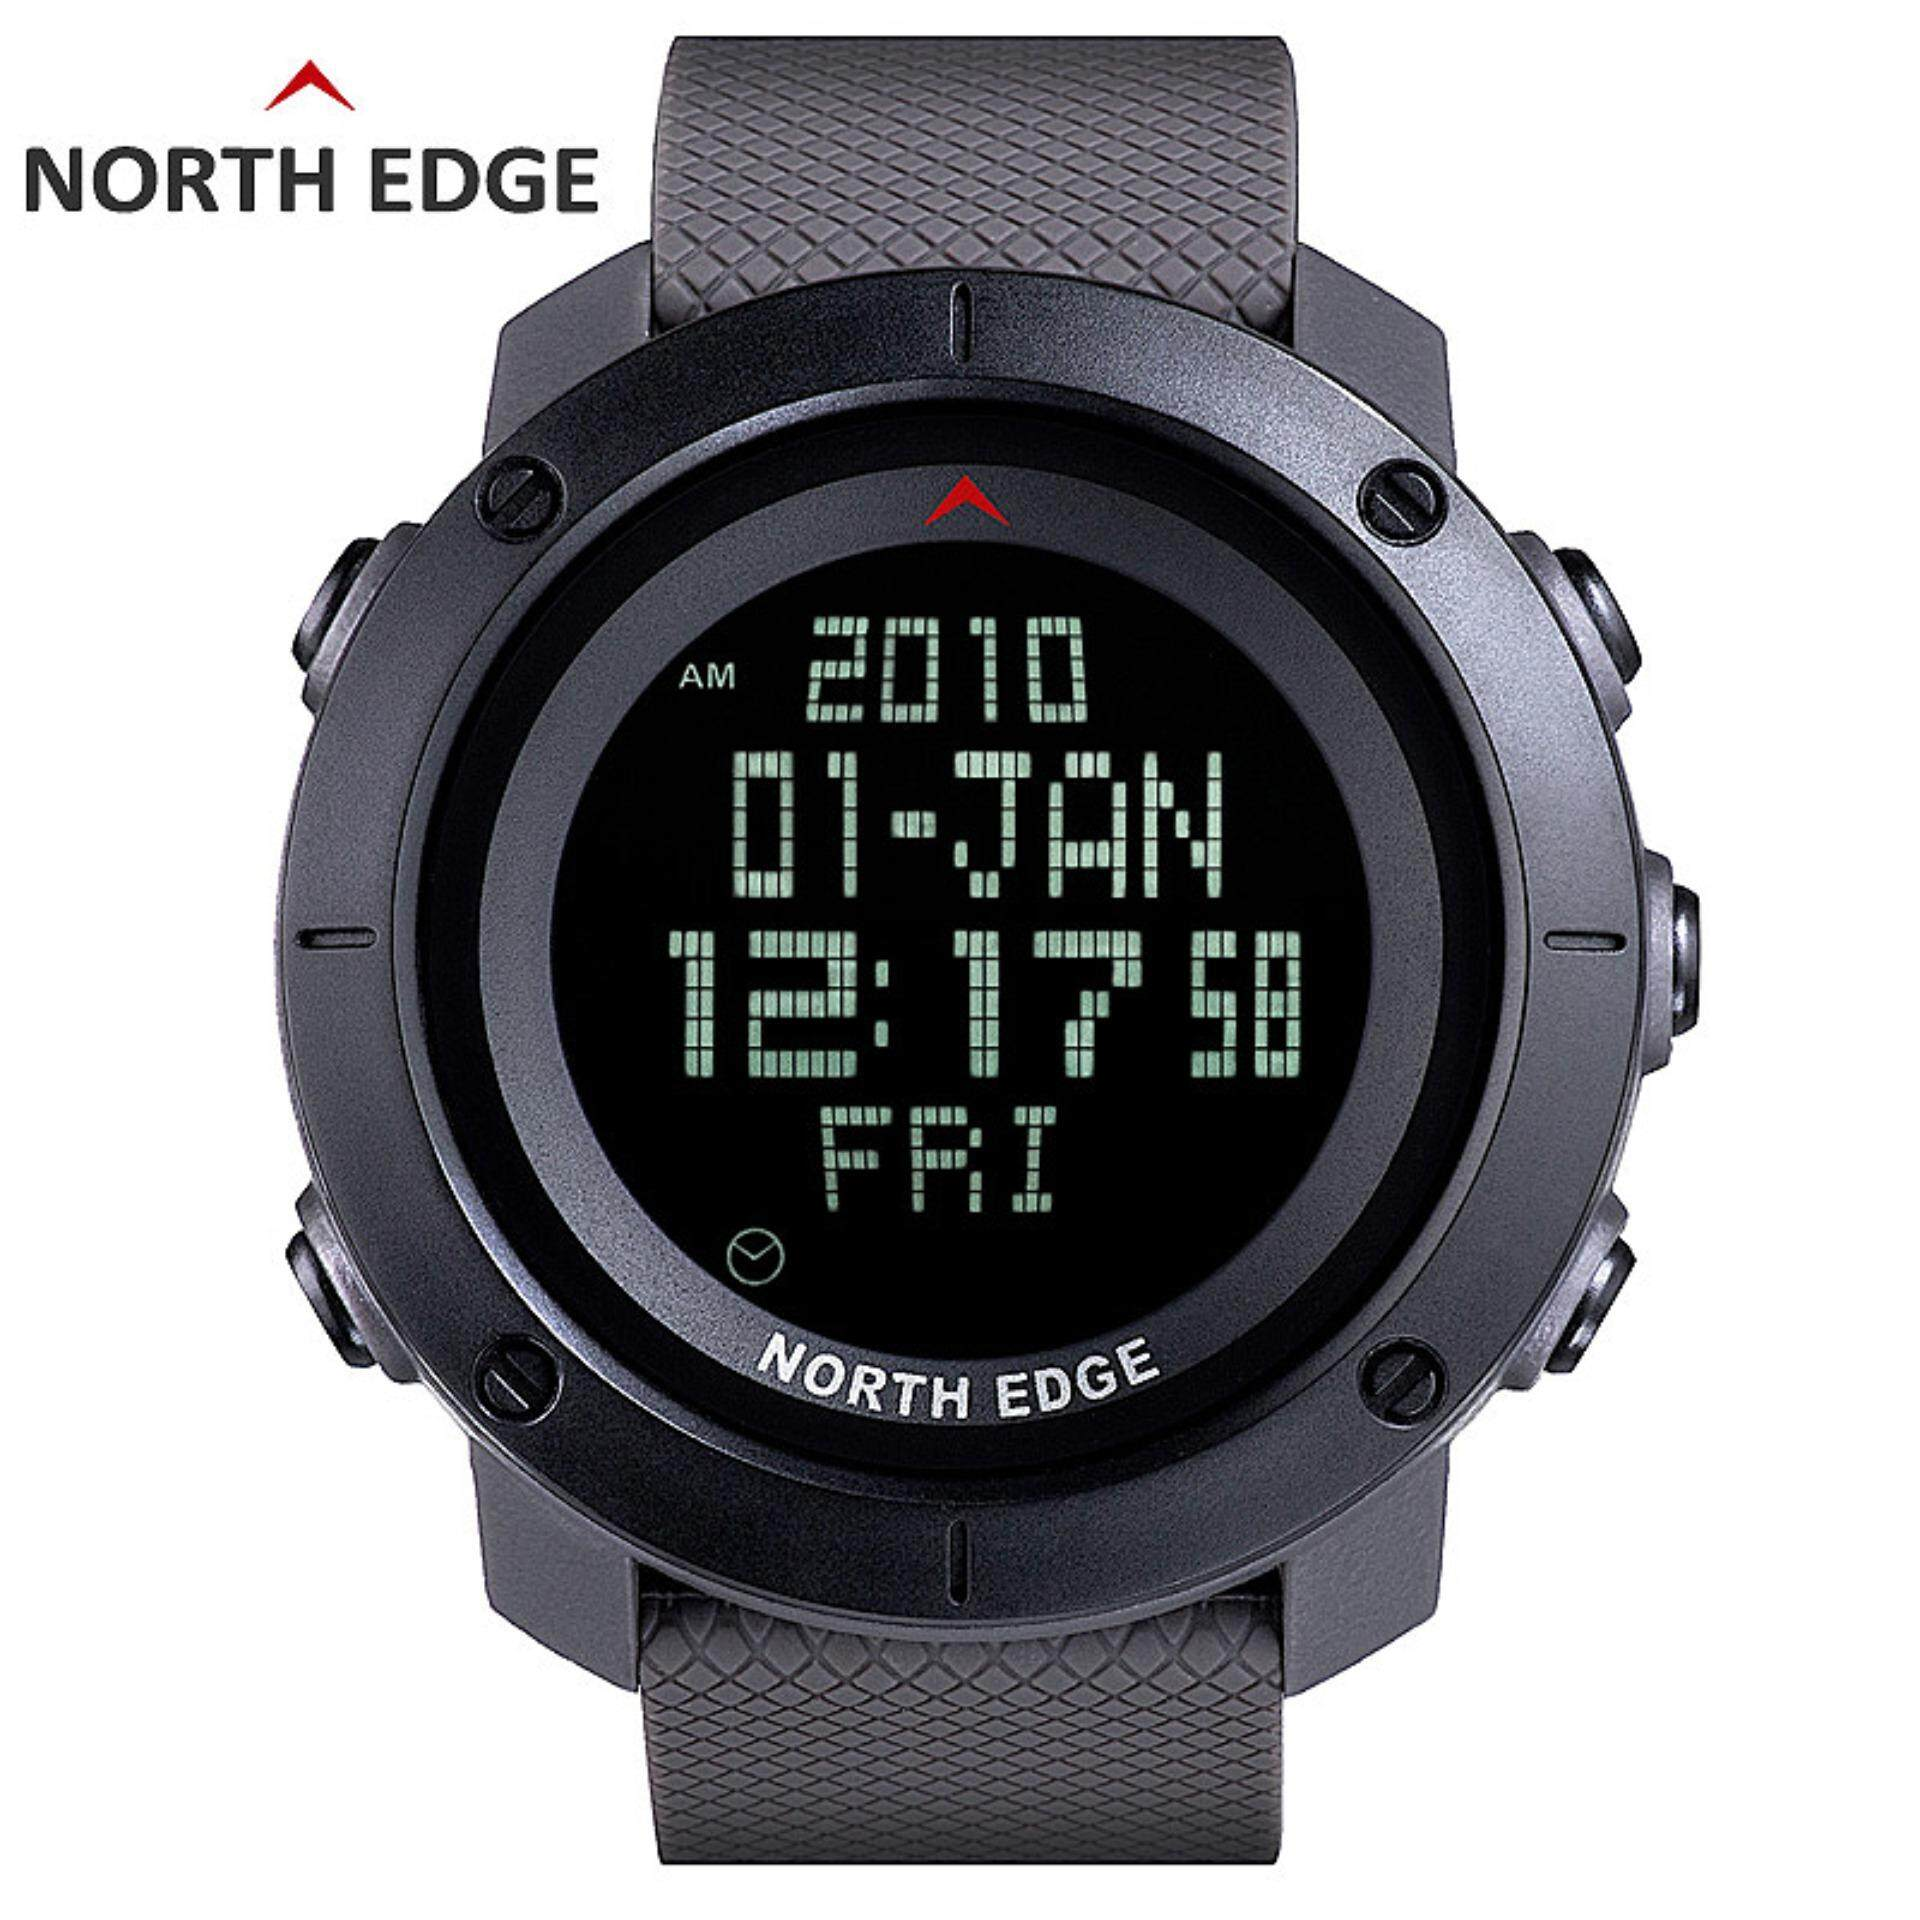 Fitur North Edge Mens Sports Digital Watch Jam For Menjalankan Running Hours Swimming Military Army Watches Water Resistant 50m